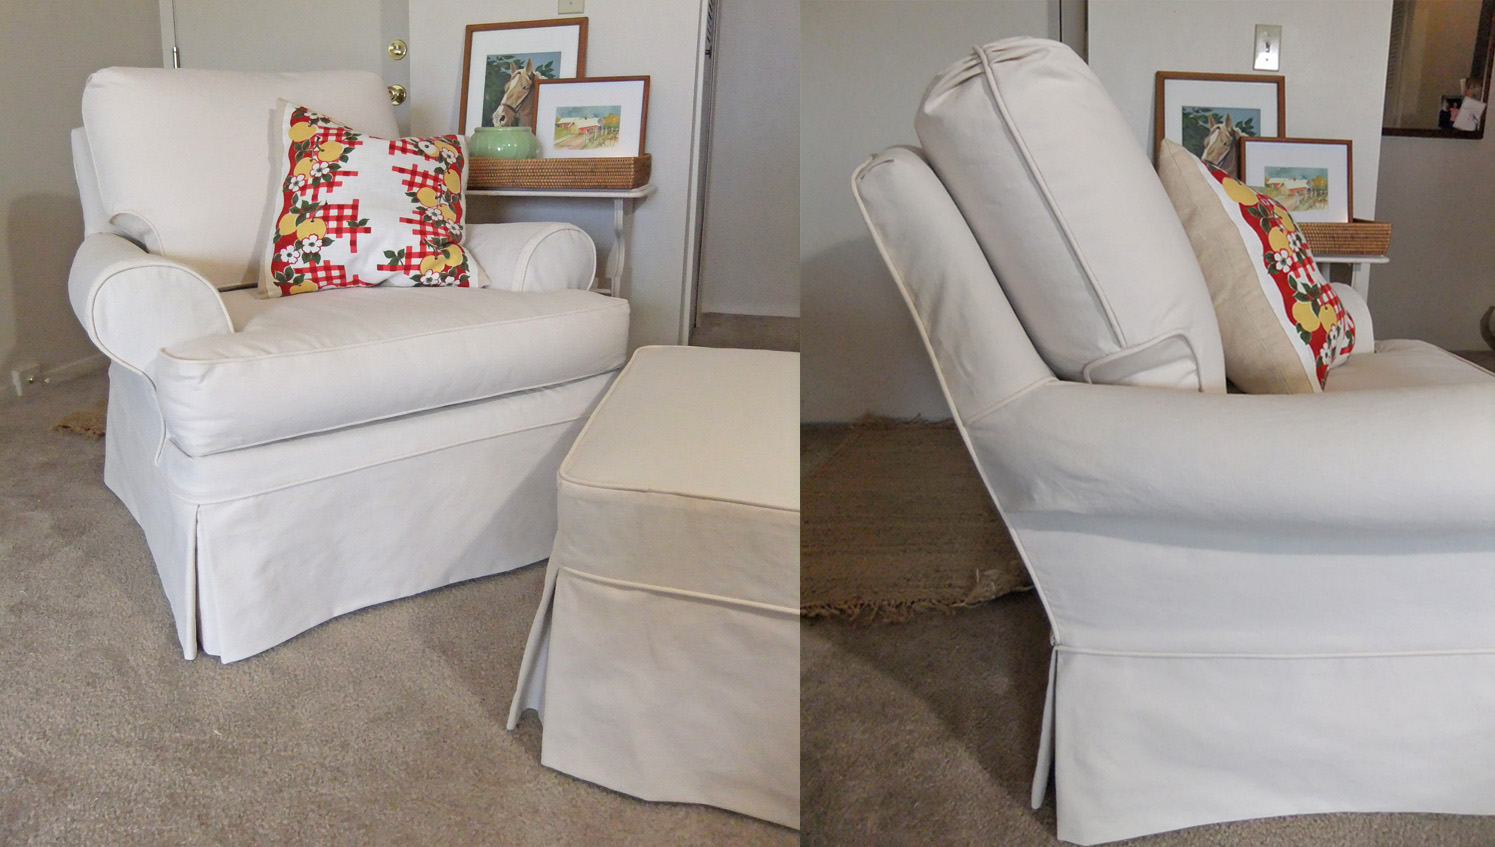 Custom Slipcovers in Natural Canvas The Slipcover Maker